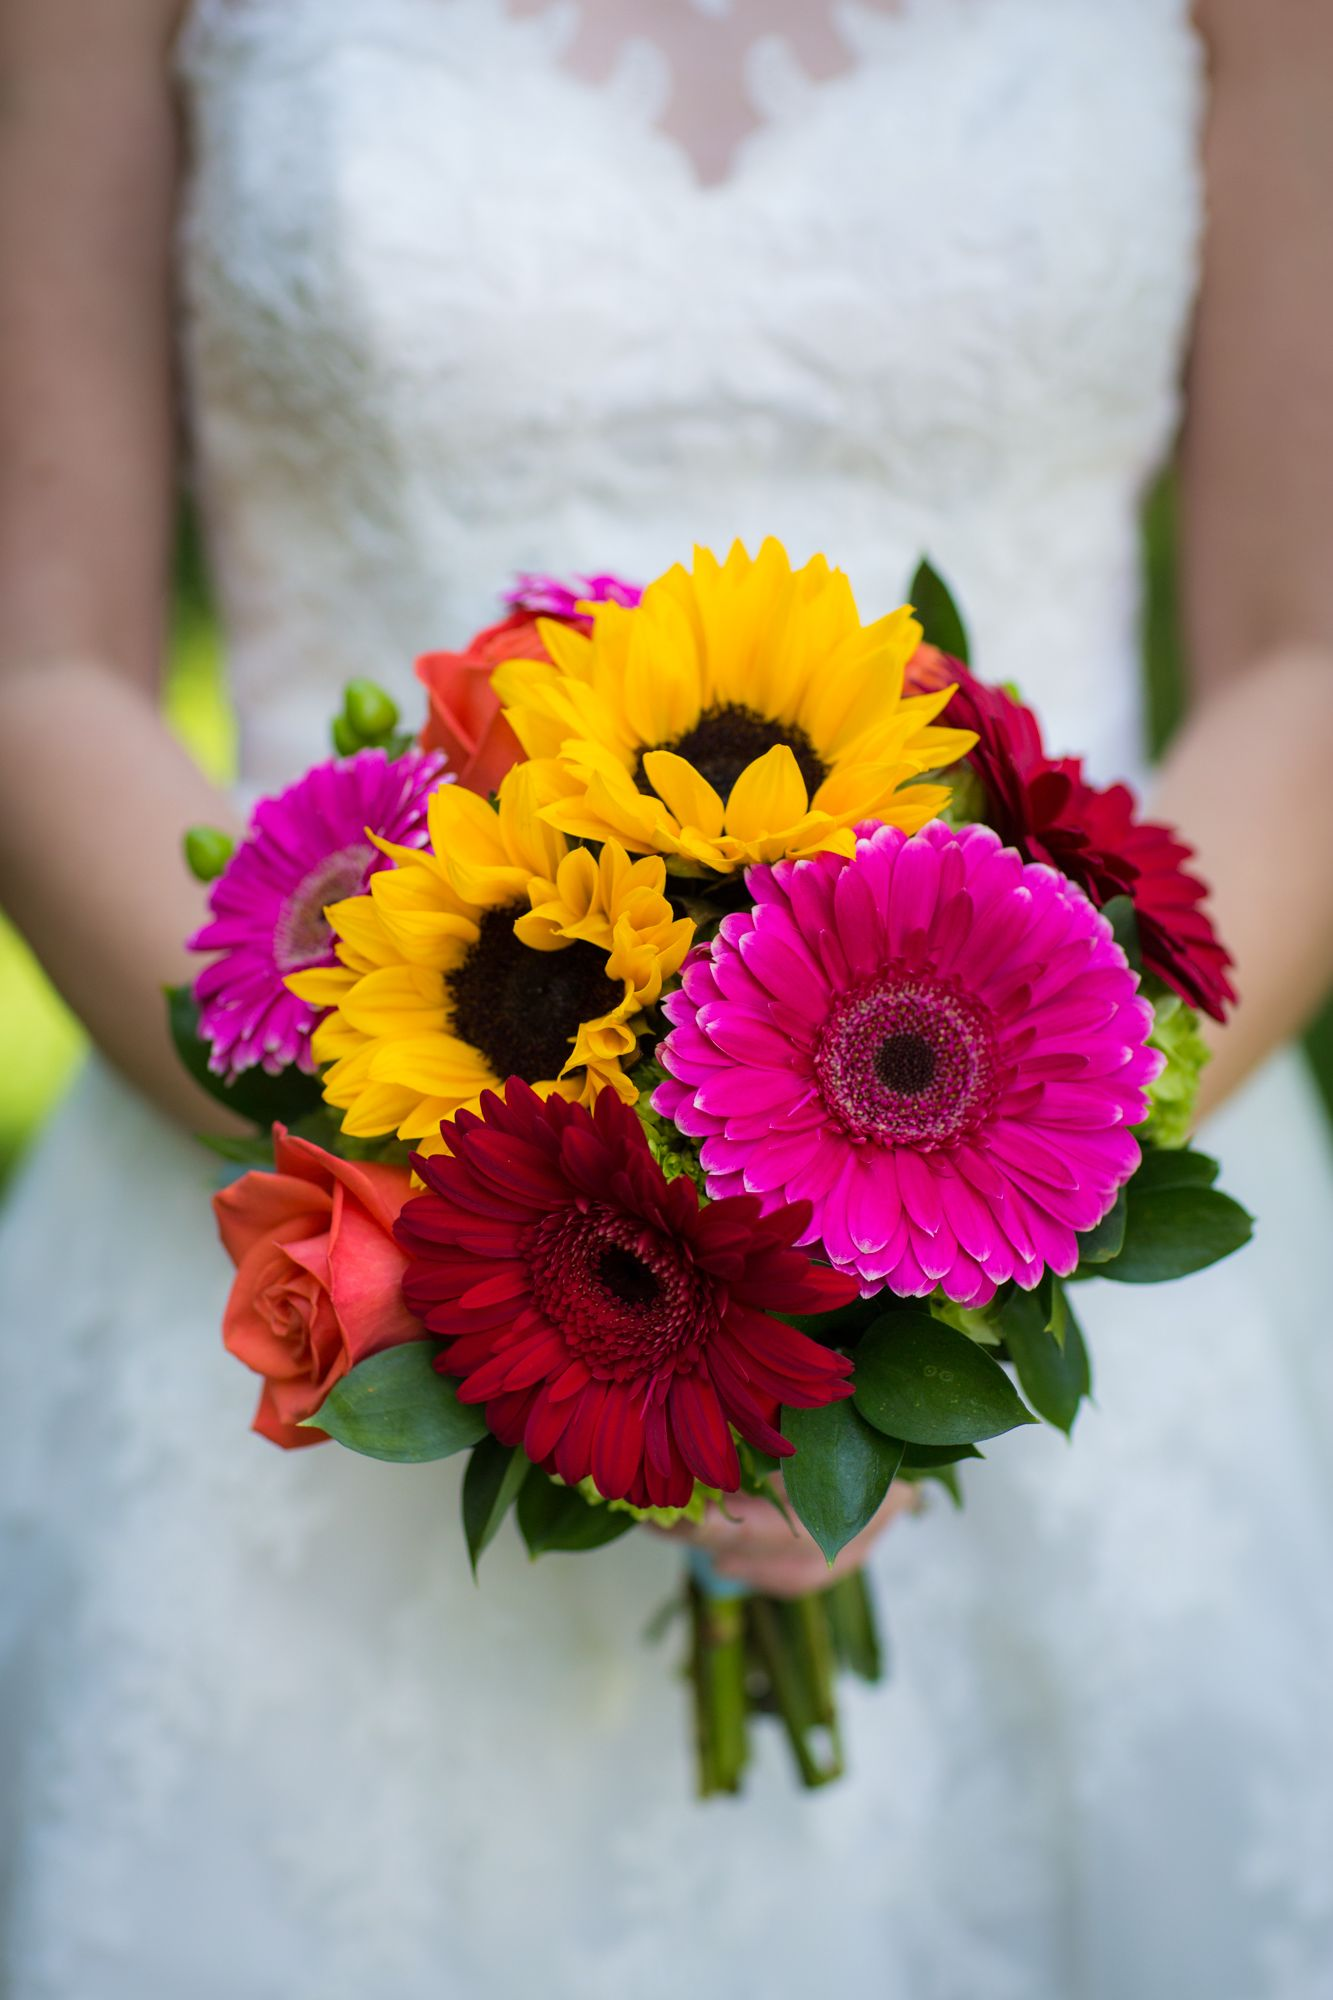 Colorful Gerbera Daisy And Sunflower Bridal Bouquet Ramos Para